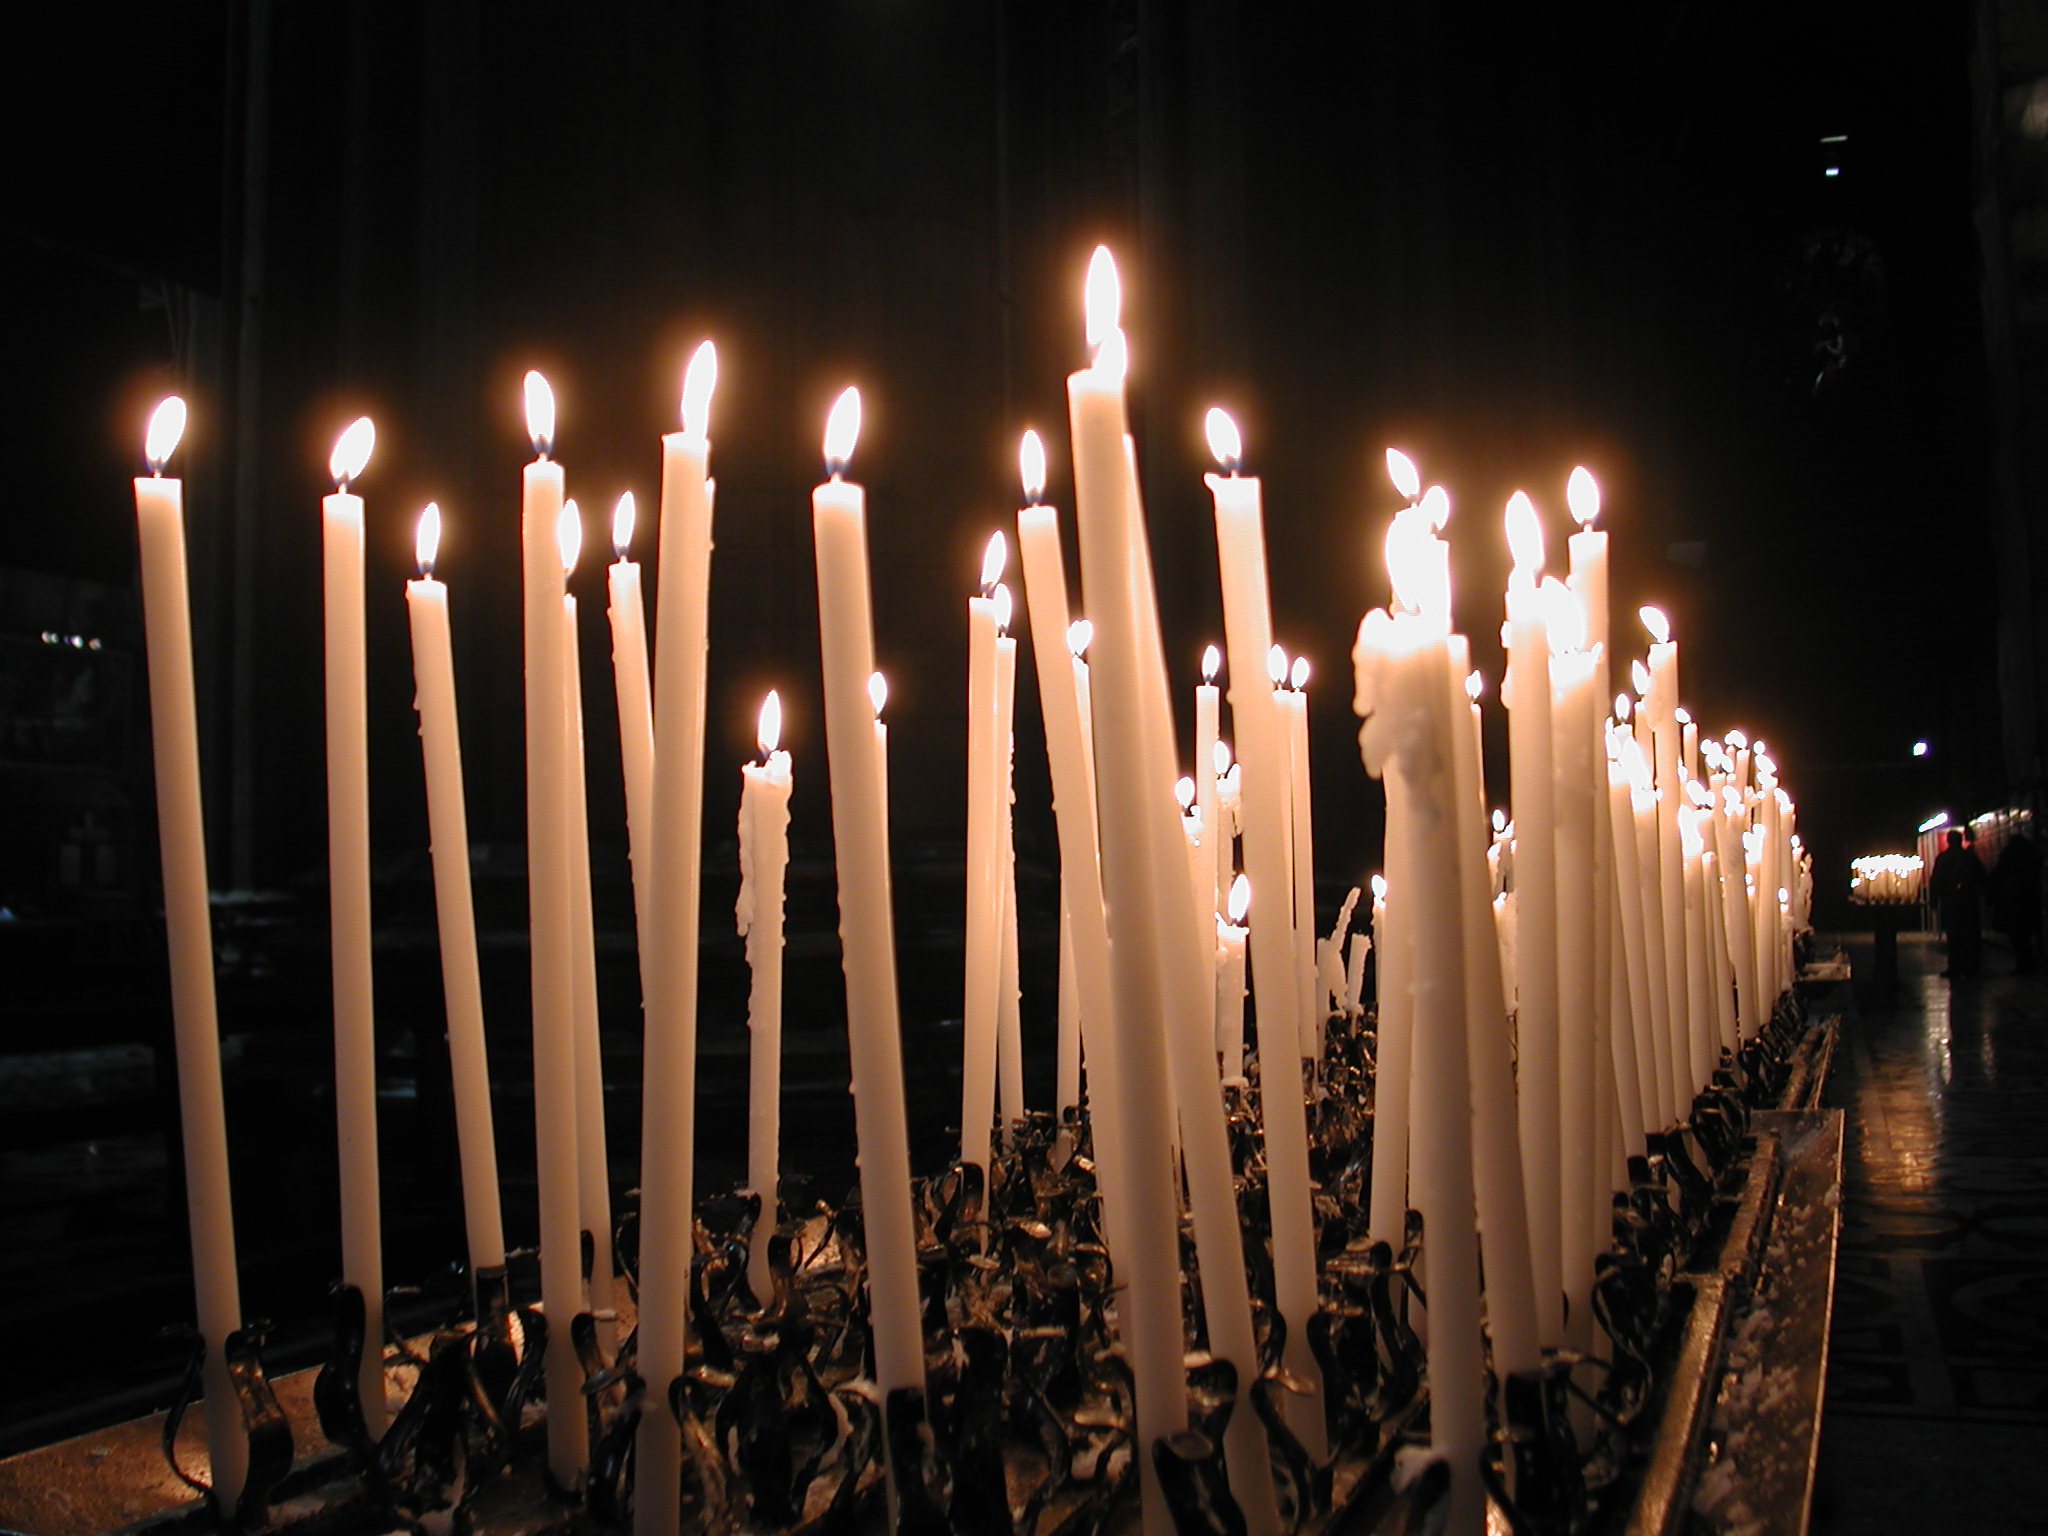 Файл:Milan cathedral candles jpg — Википедия